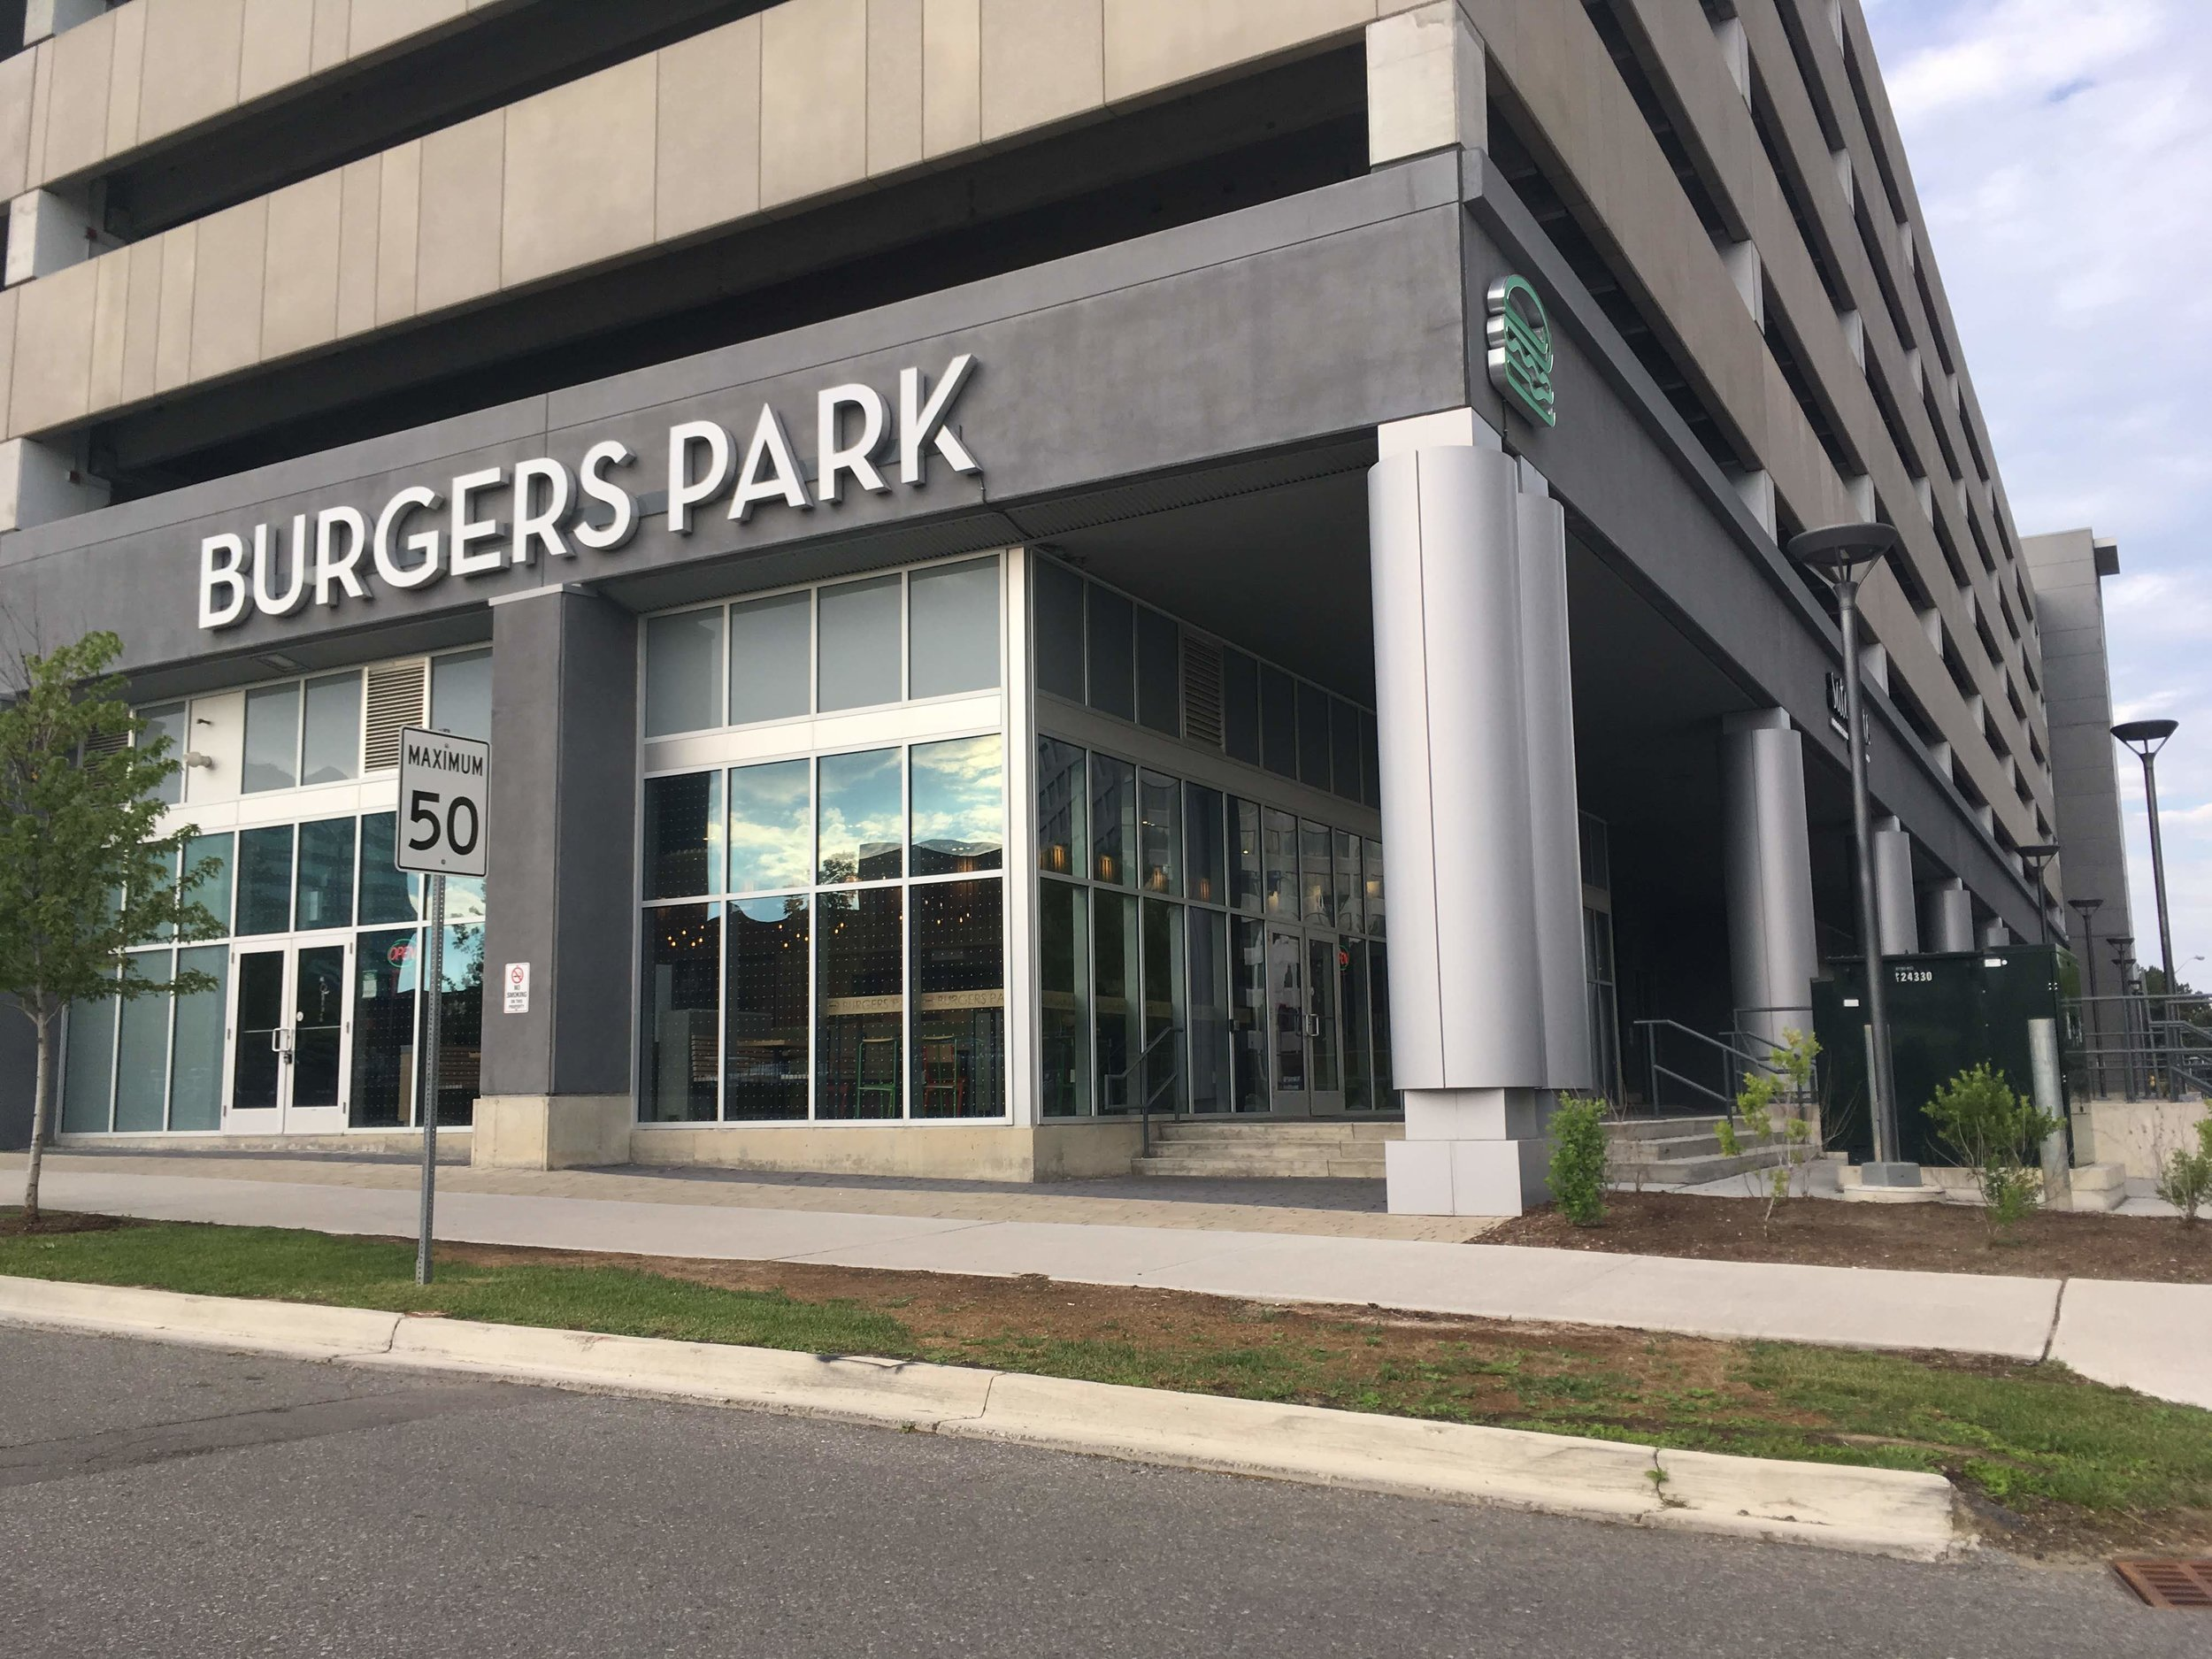 Picture of the accessible entrance for Burgers Park